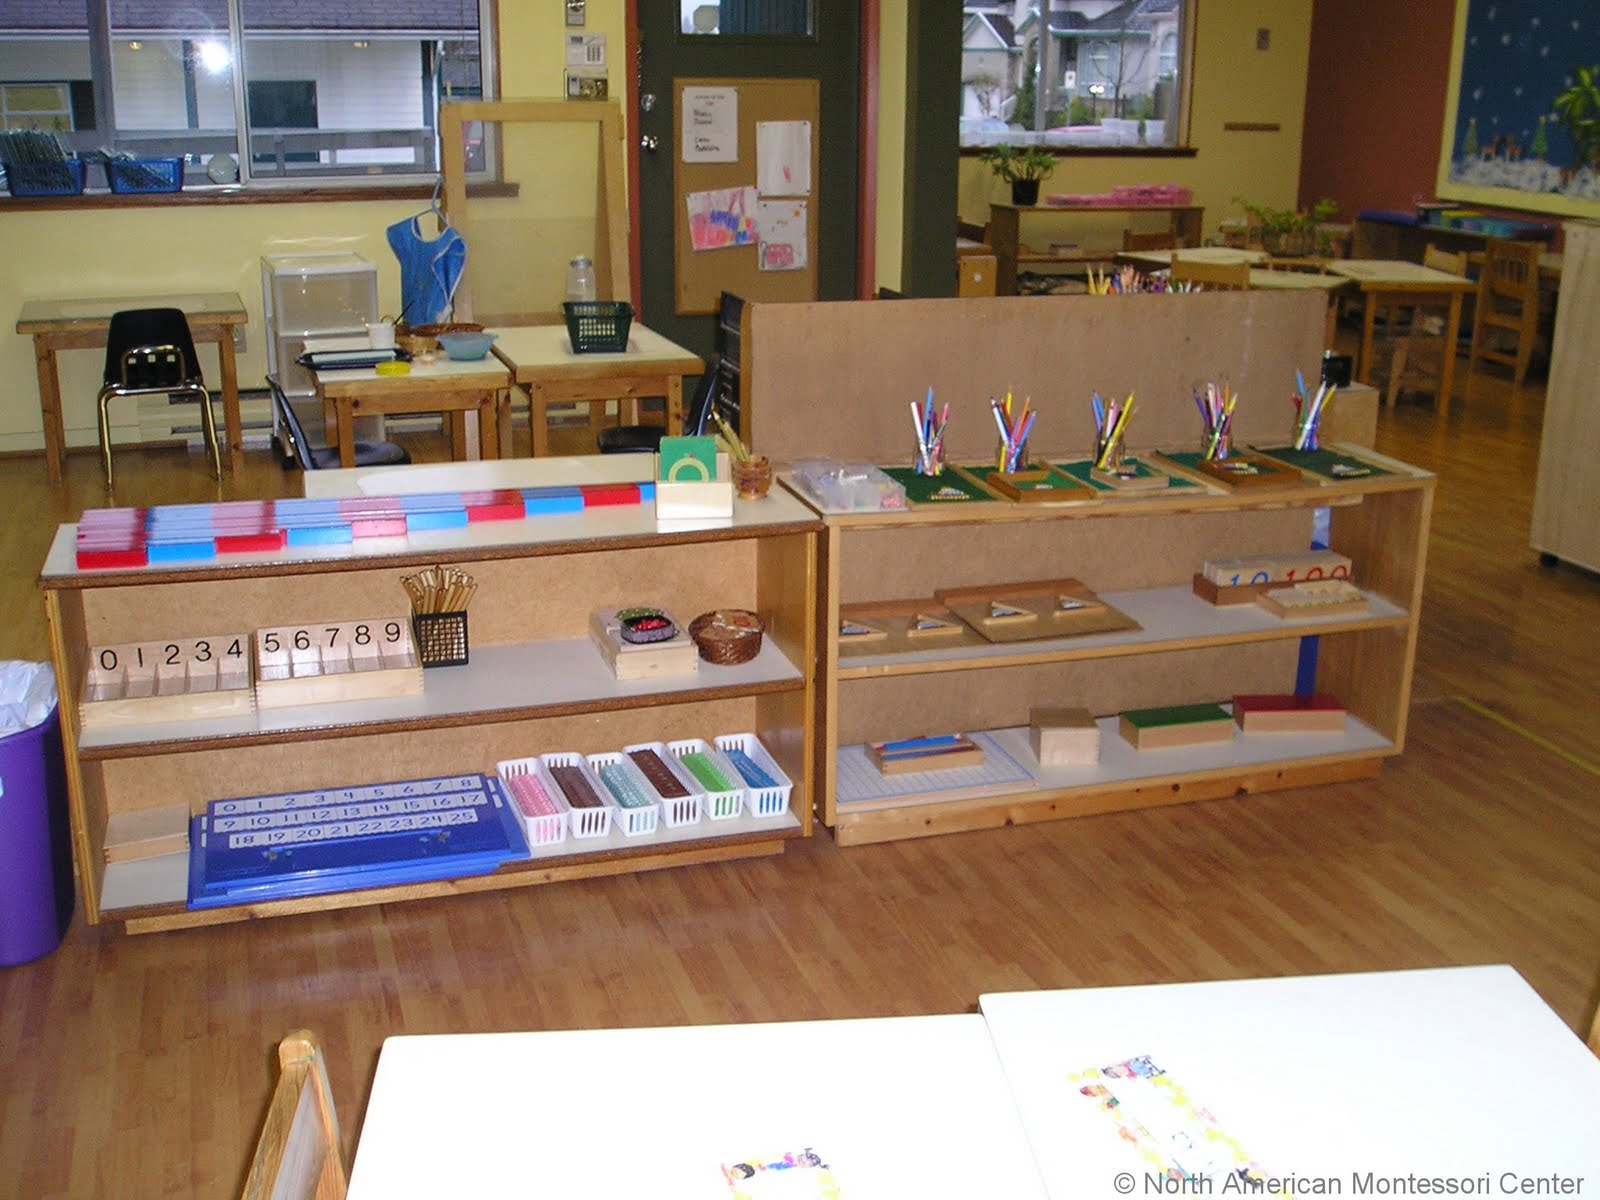 ... give you some insight into a typical day in my Montessori classroom